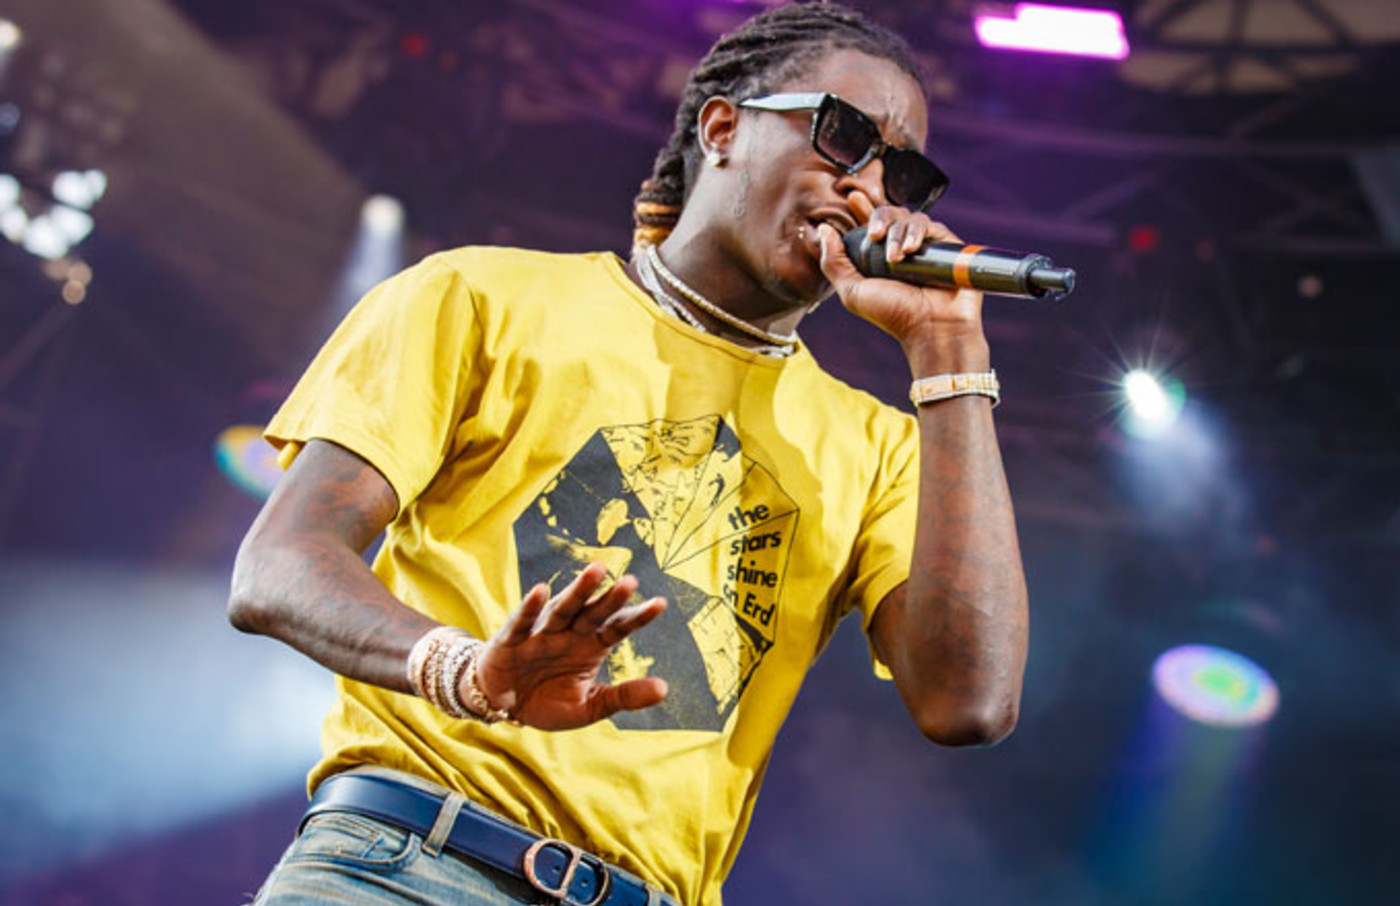 Young Thug performs